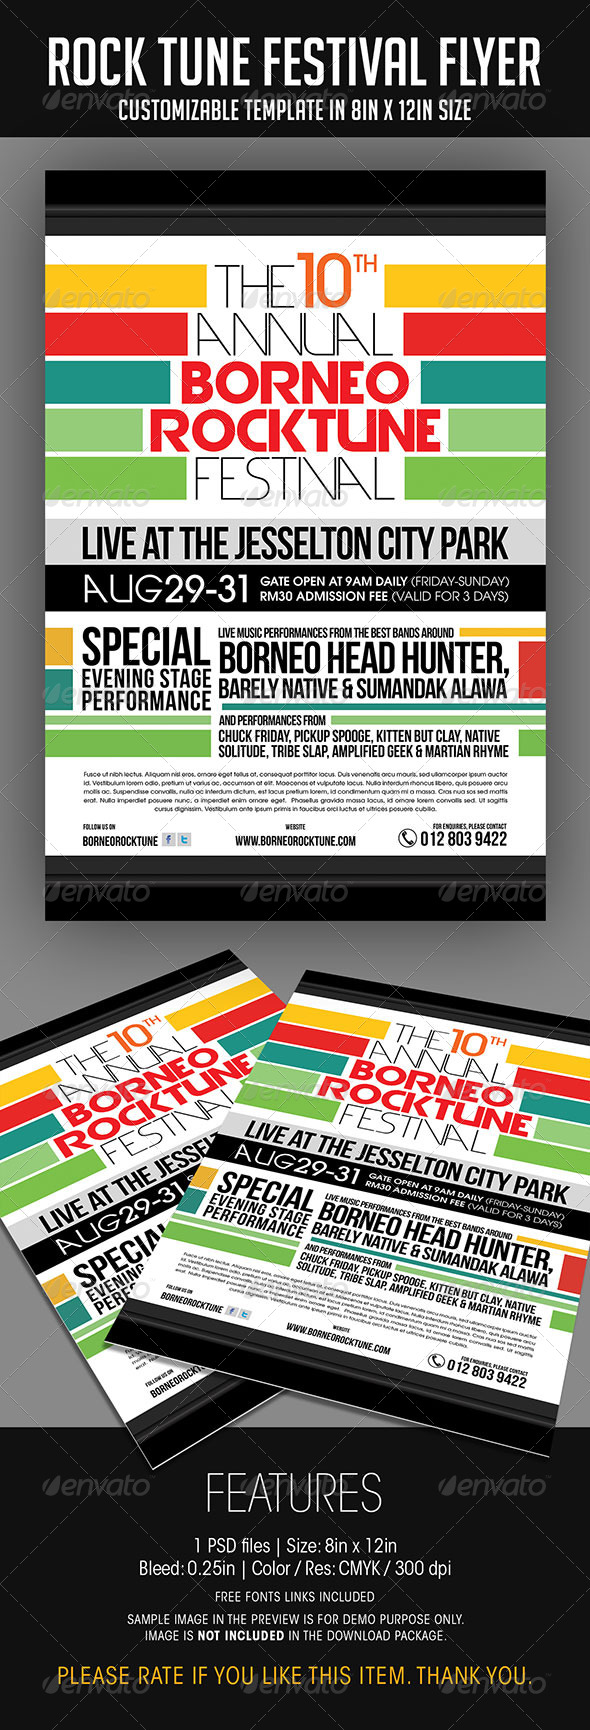 Rock Tune Festival Flyer - Concerts Events